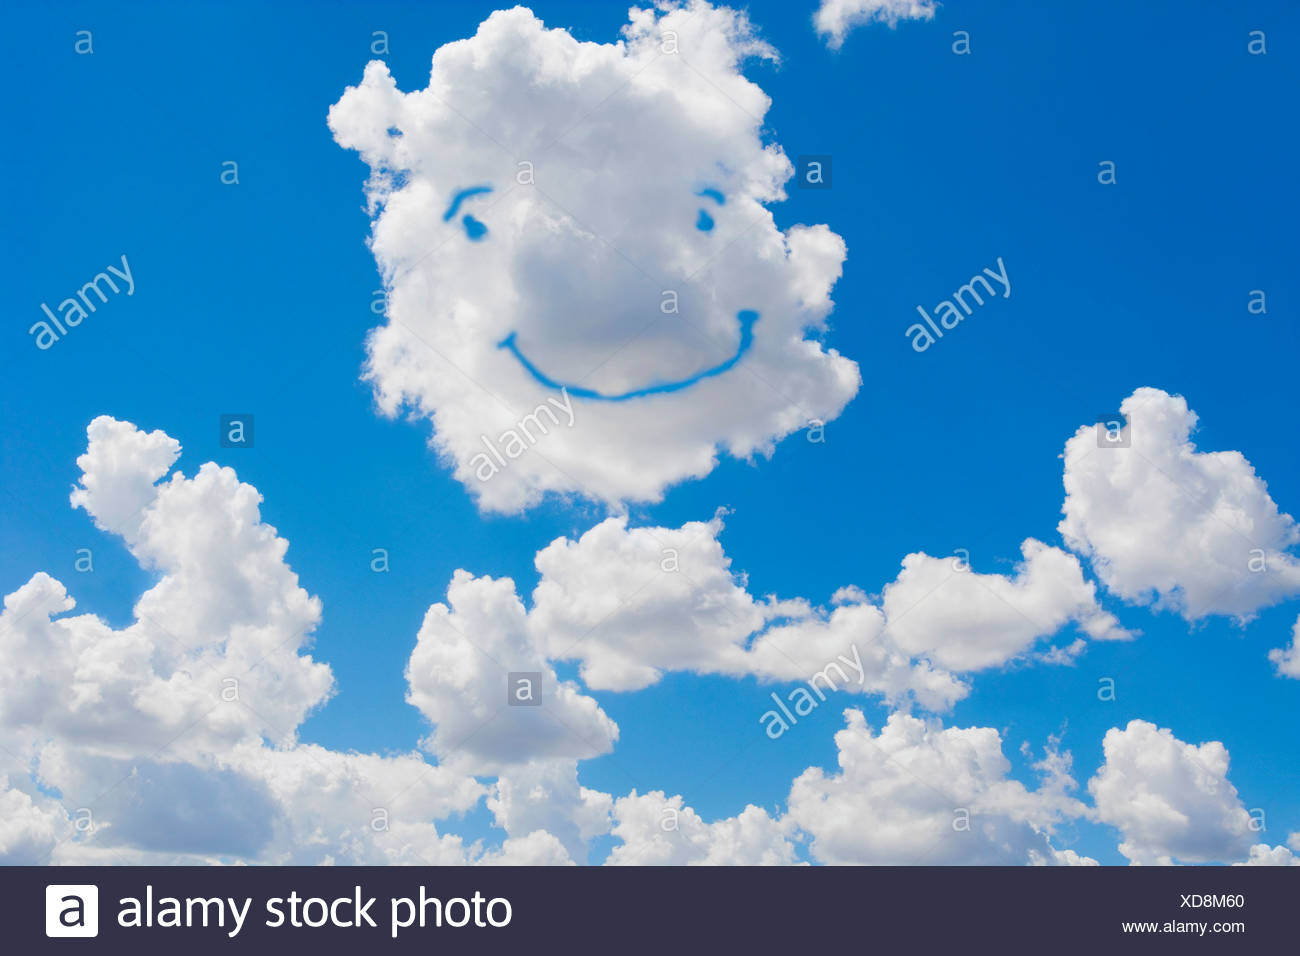 Smiley Face Formed In Clouds Stock Photo 283547880 Alamy